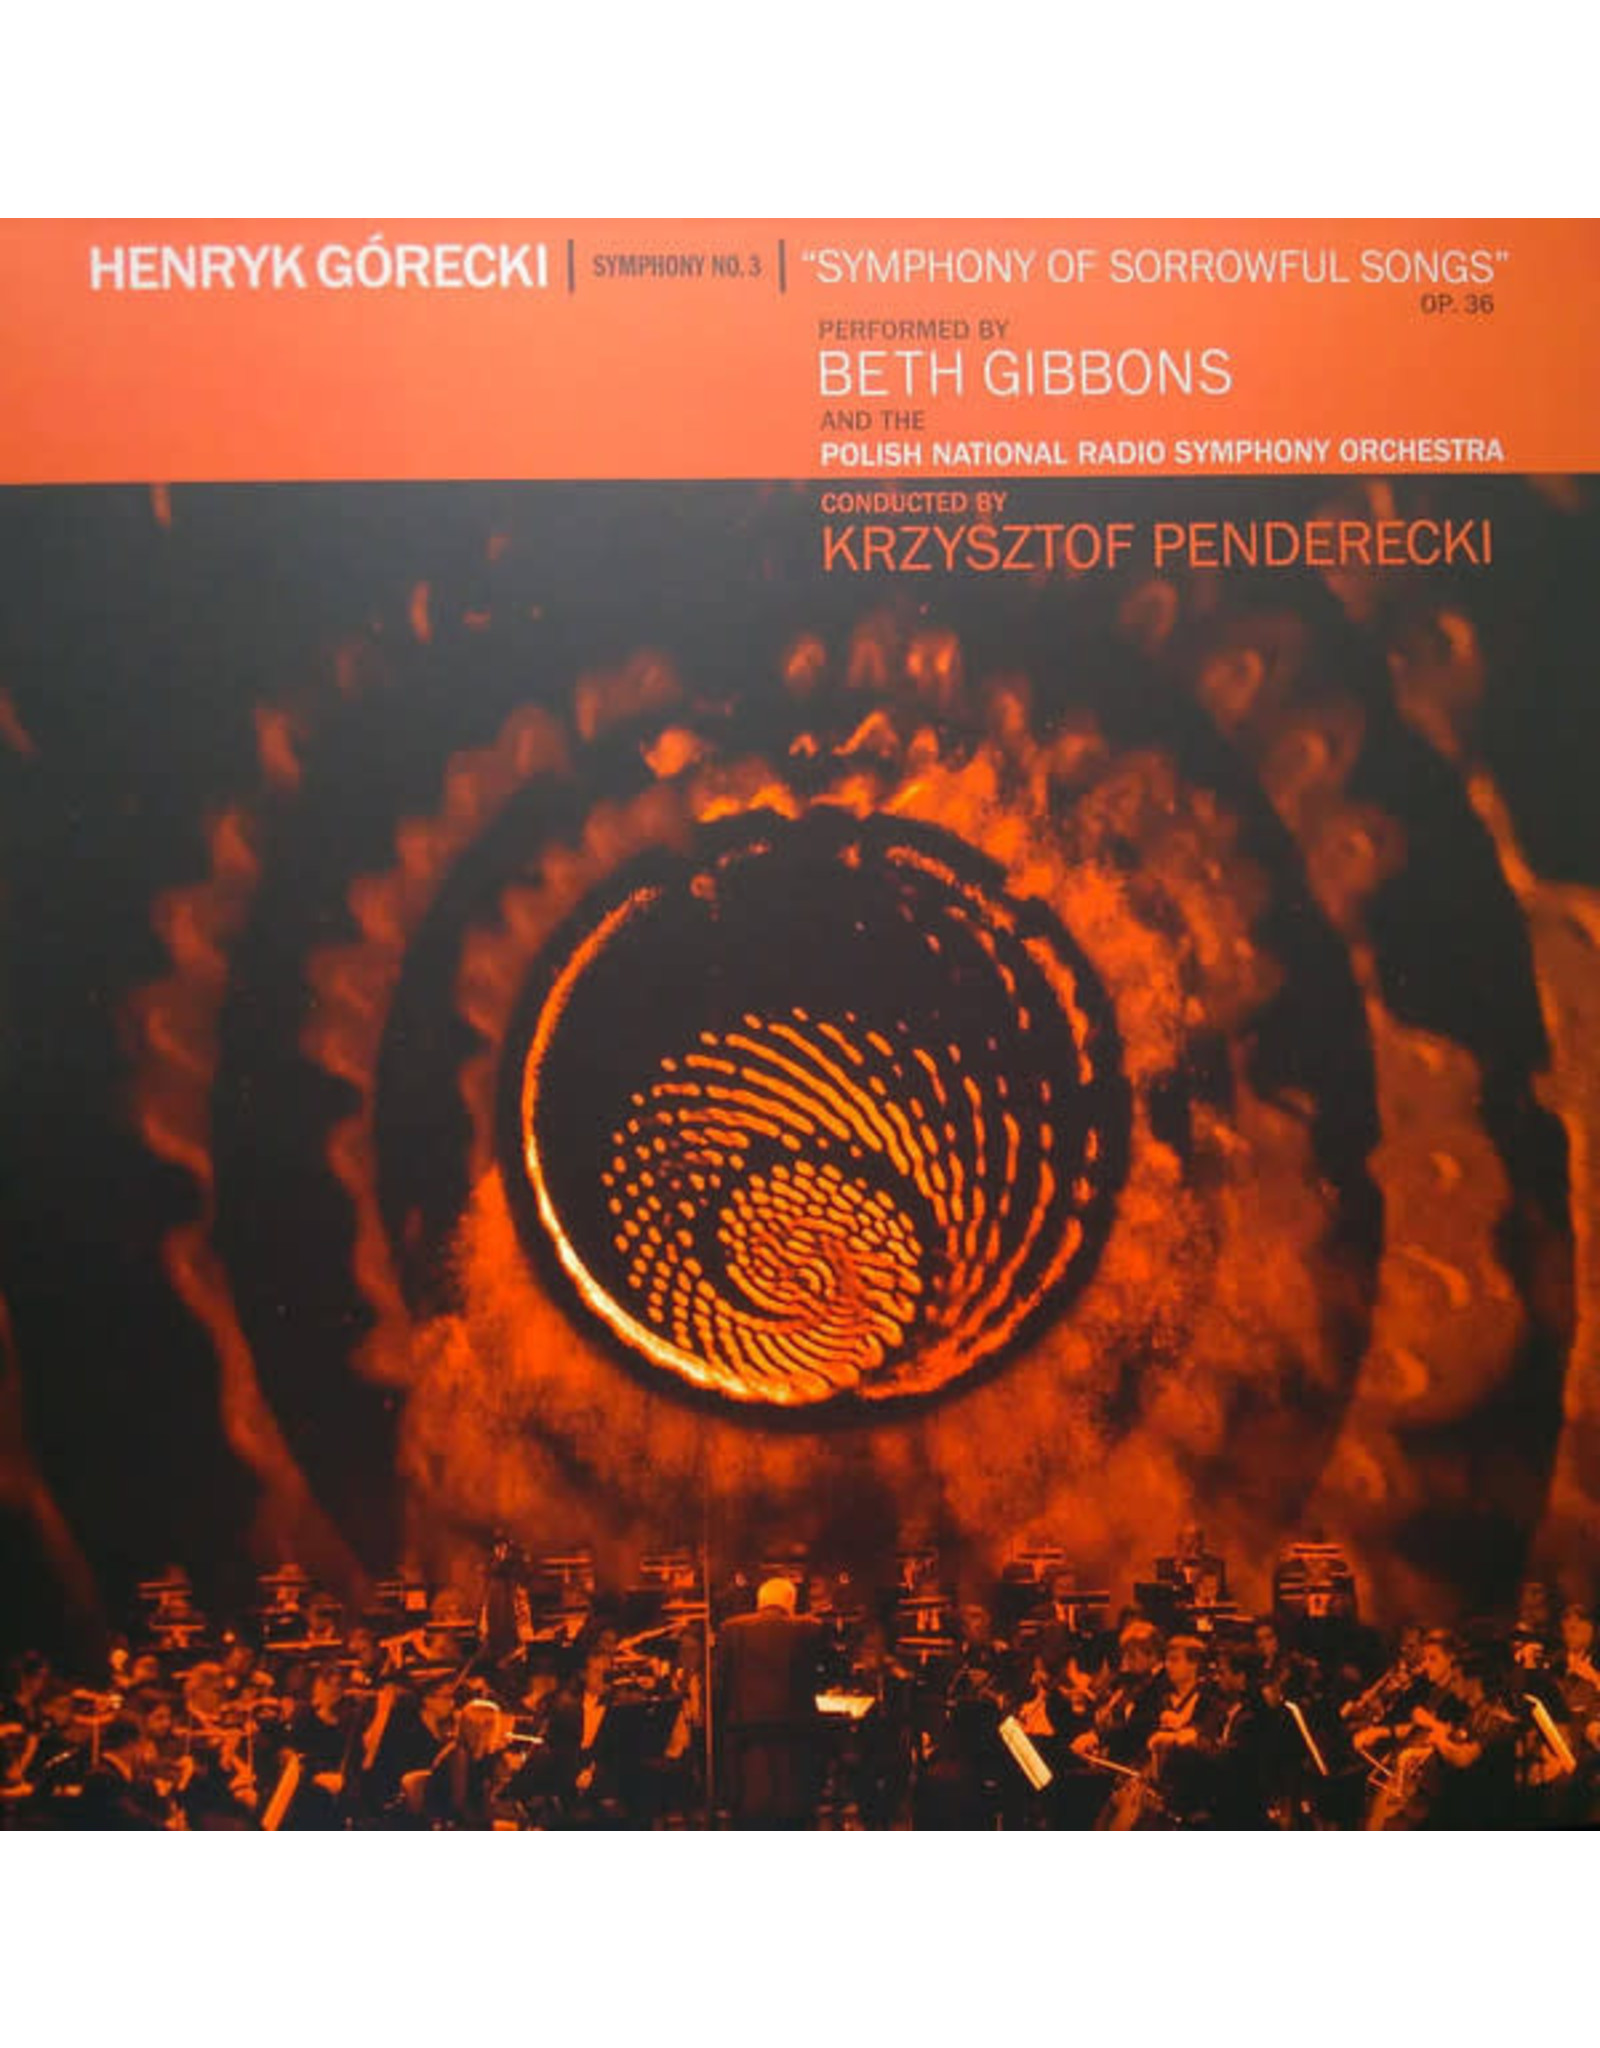 New Vinyl Beth Gibbons & Polish National Orchestra - Symphony No. 3 Deluxe LP + DVD